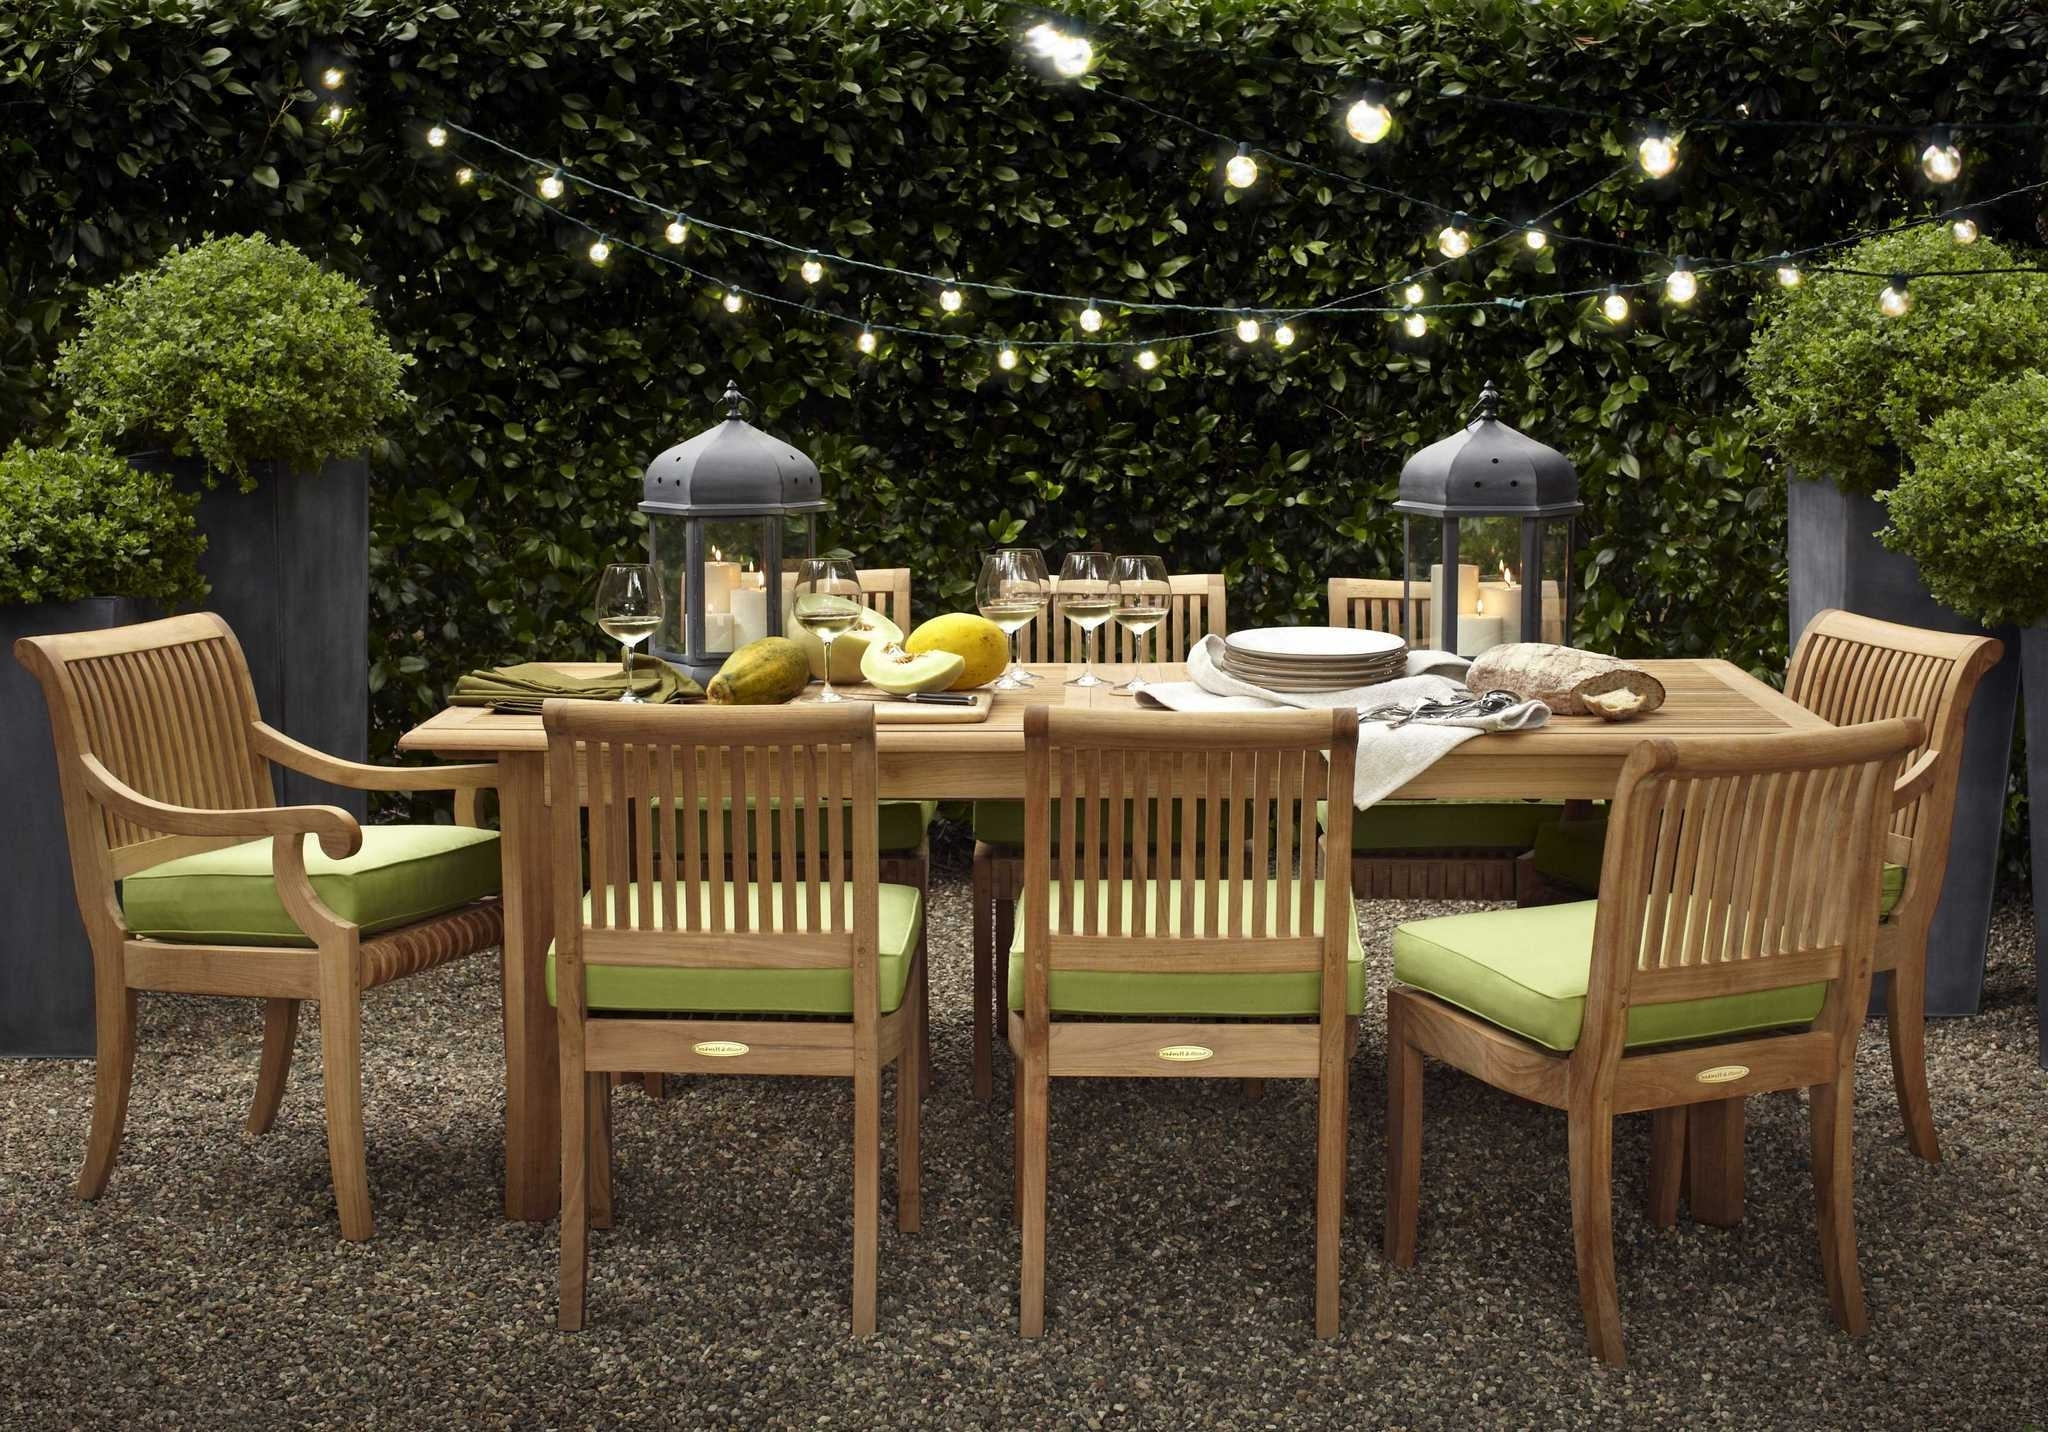 Porch Lighting Ranch Style Landscape Light Kits Ideas Backyard Within Favorite Outdoor Dining Lanterns (View 14 of 20)